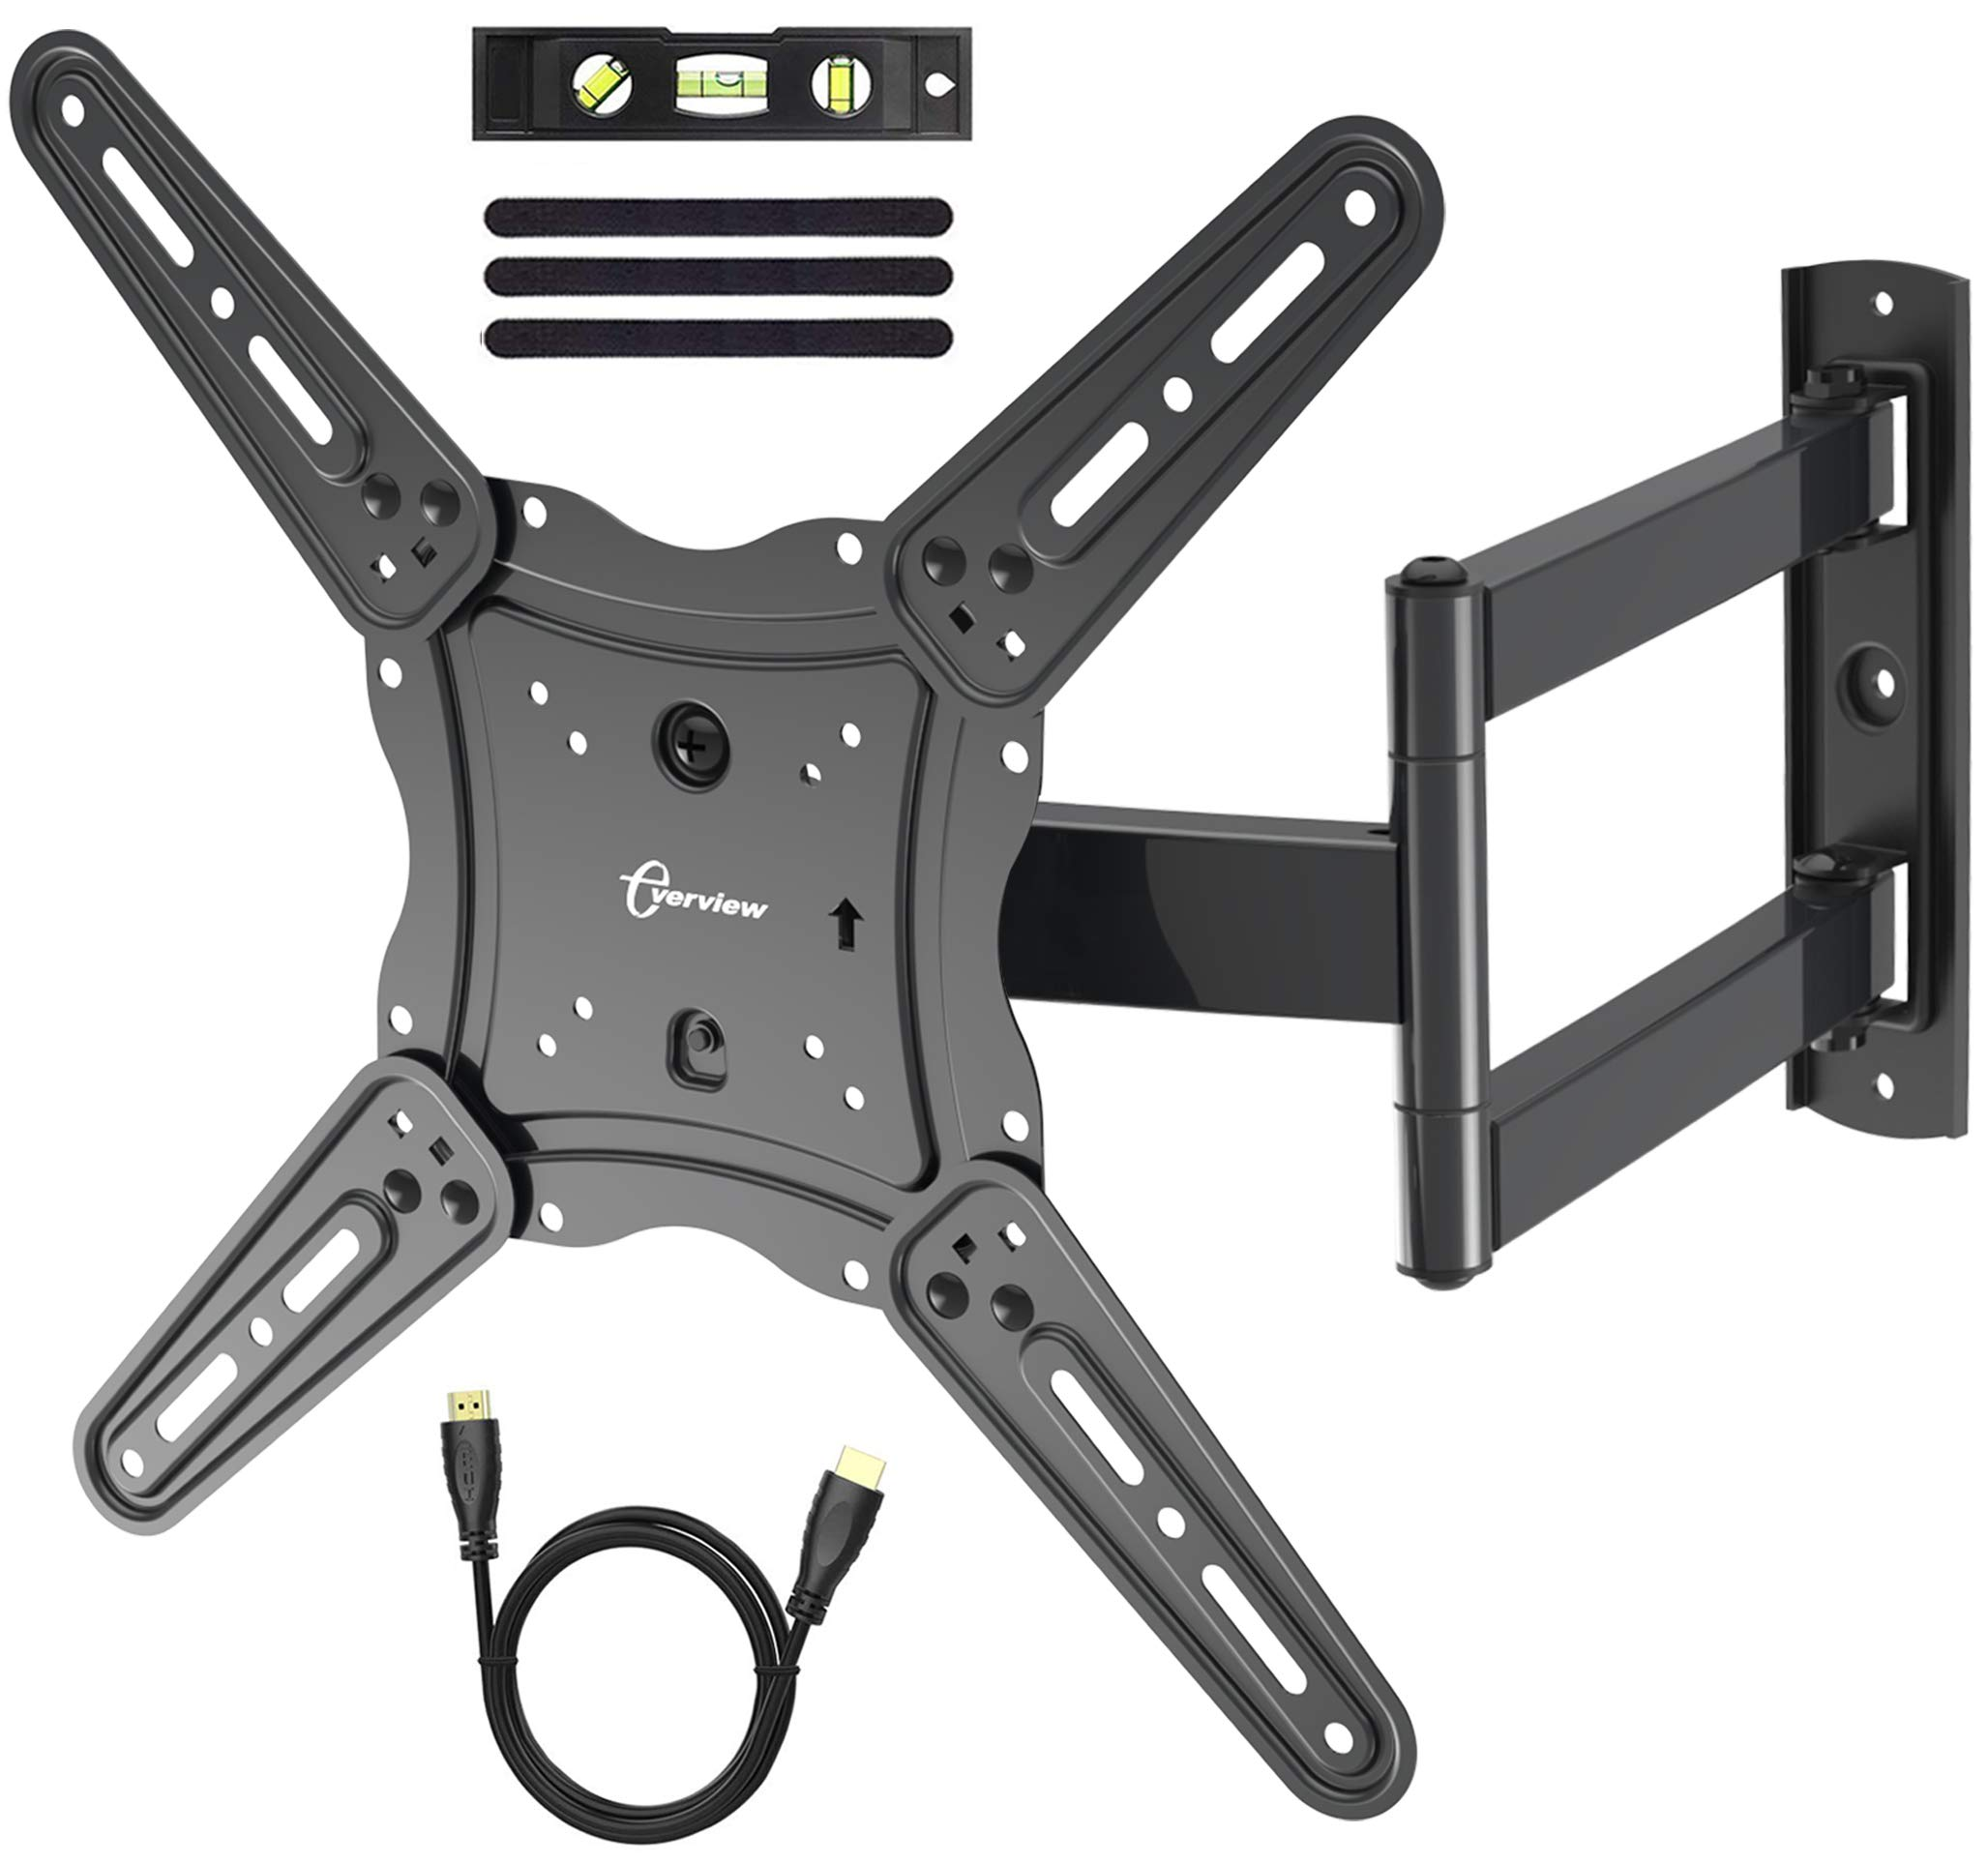 TV Wall Mount Bracket fits to Most 26-55 inch LED,LCD,OLED Flat Panel TVs, Tilt Full Motion Swivel Articulating Arms, TV Bracket VESA 400X400, 77lbs Loading with HDMI Cable, Cable Ties EVERVIEW by EVERVIEW